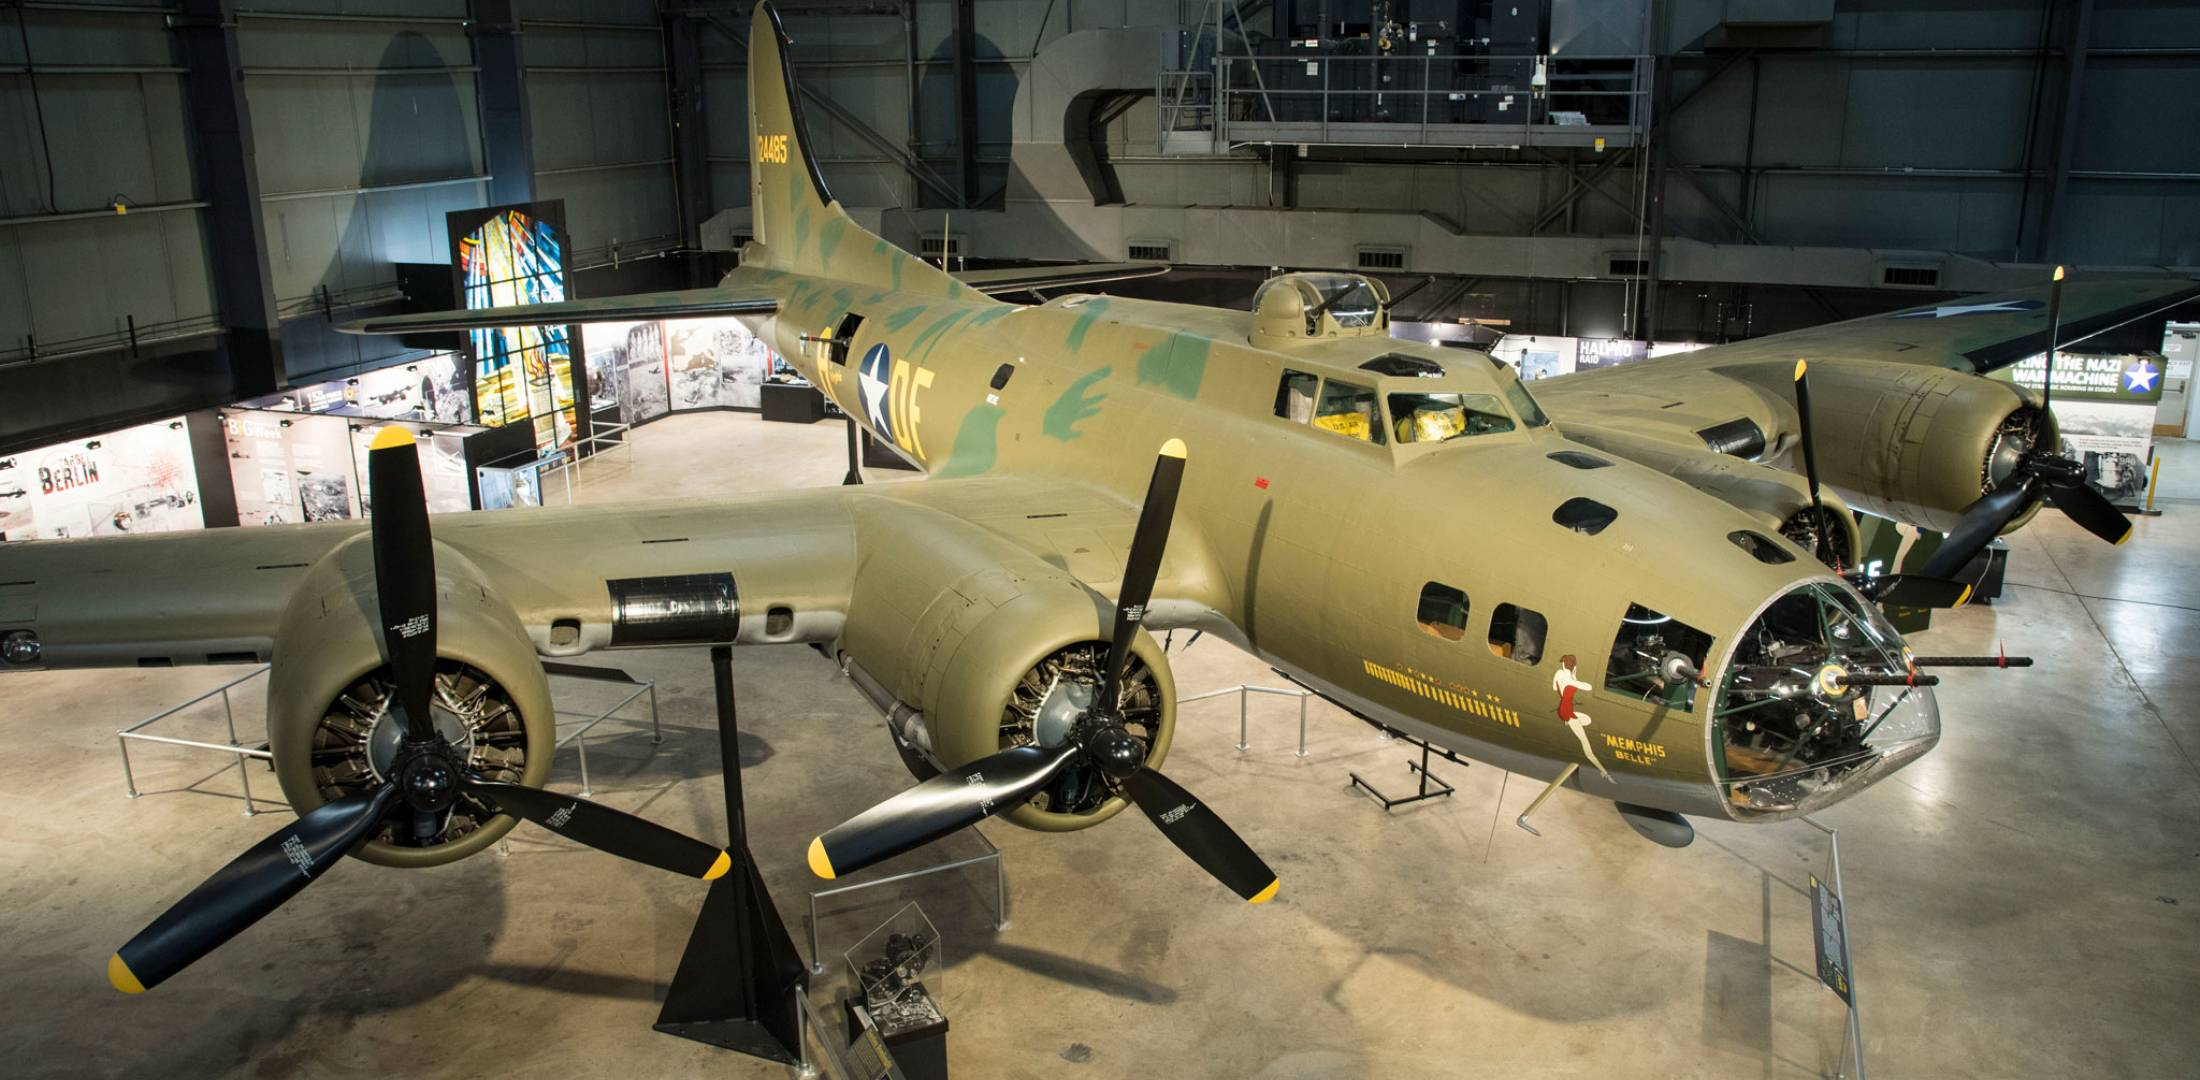 National Air Force Museum >> Air Force Museum Unveils Restored Memphis Belle Aerospace